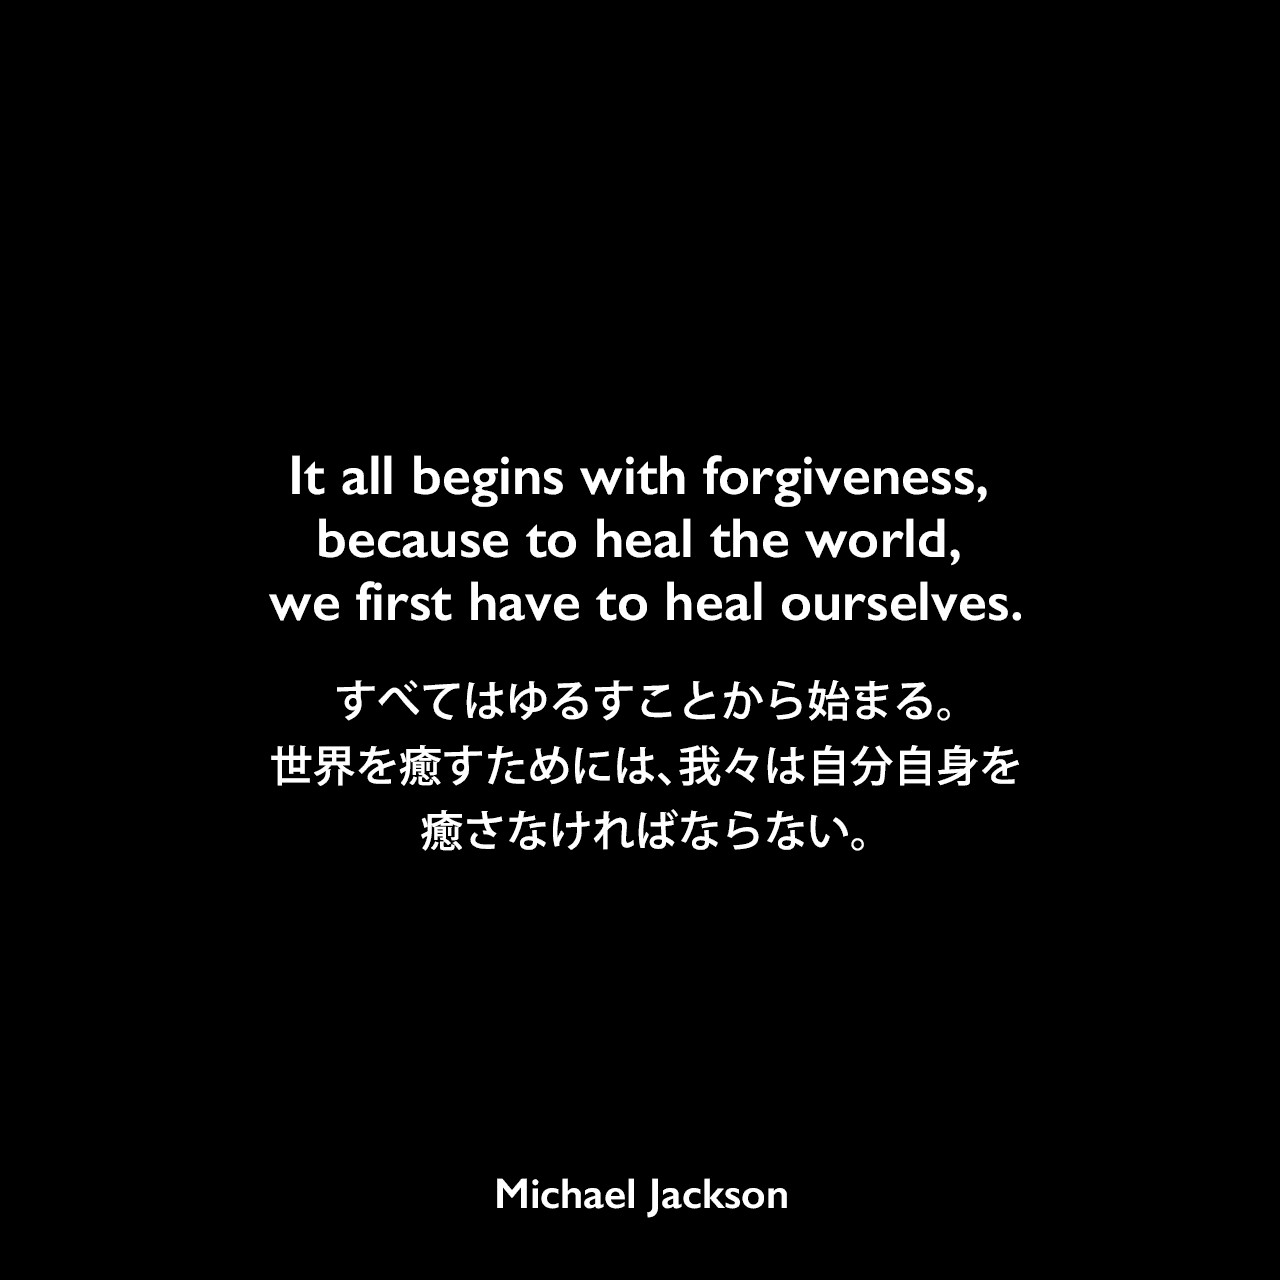 It all begins with forgiveness, because to heal the world, we first have to heal ourselves.すべてはゆるすことから始まる。世界を癒すためには、我々は自分自身を癒さなければならない。Michael Jackson